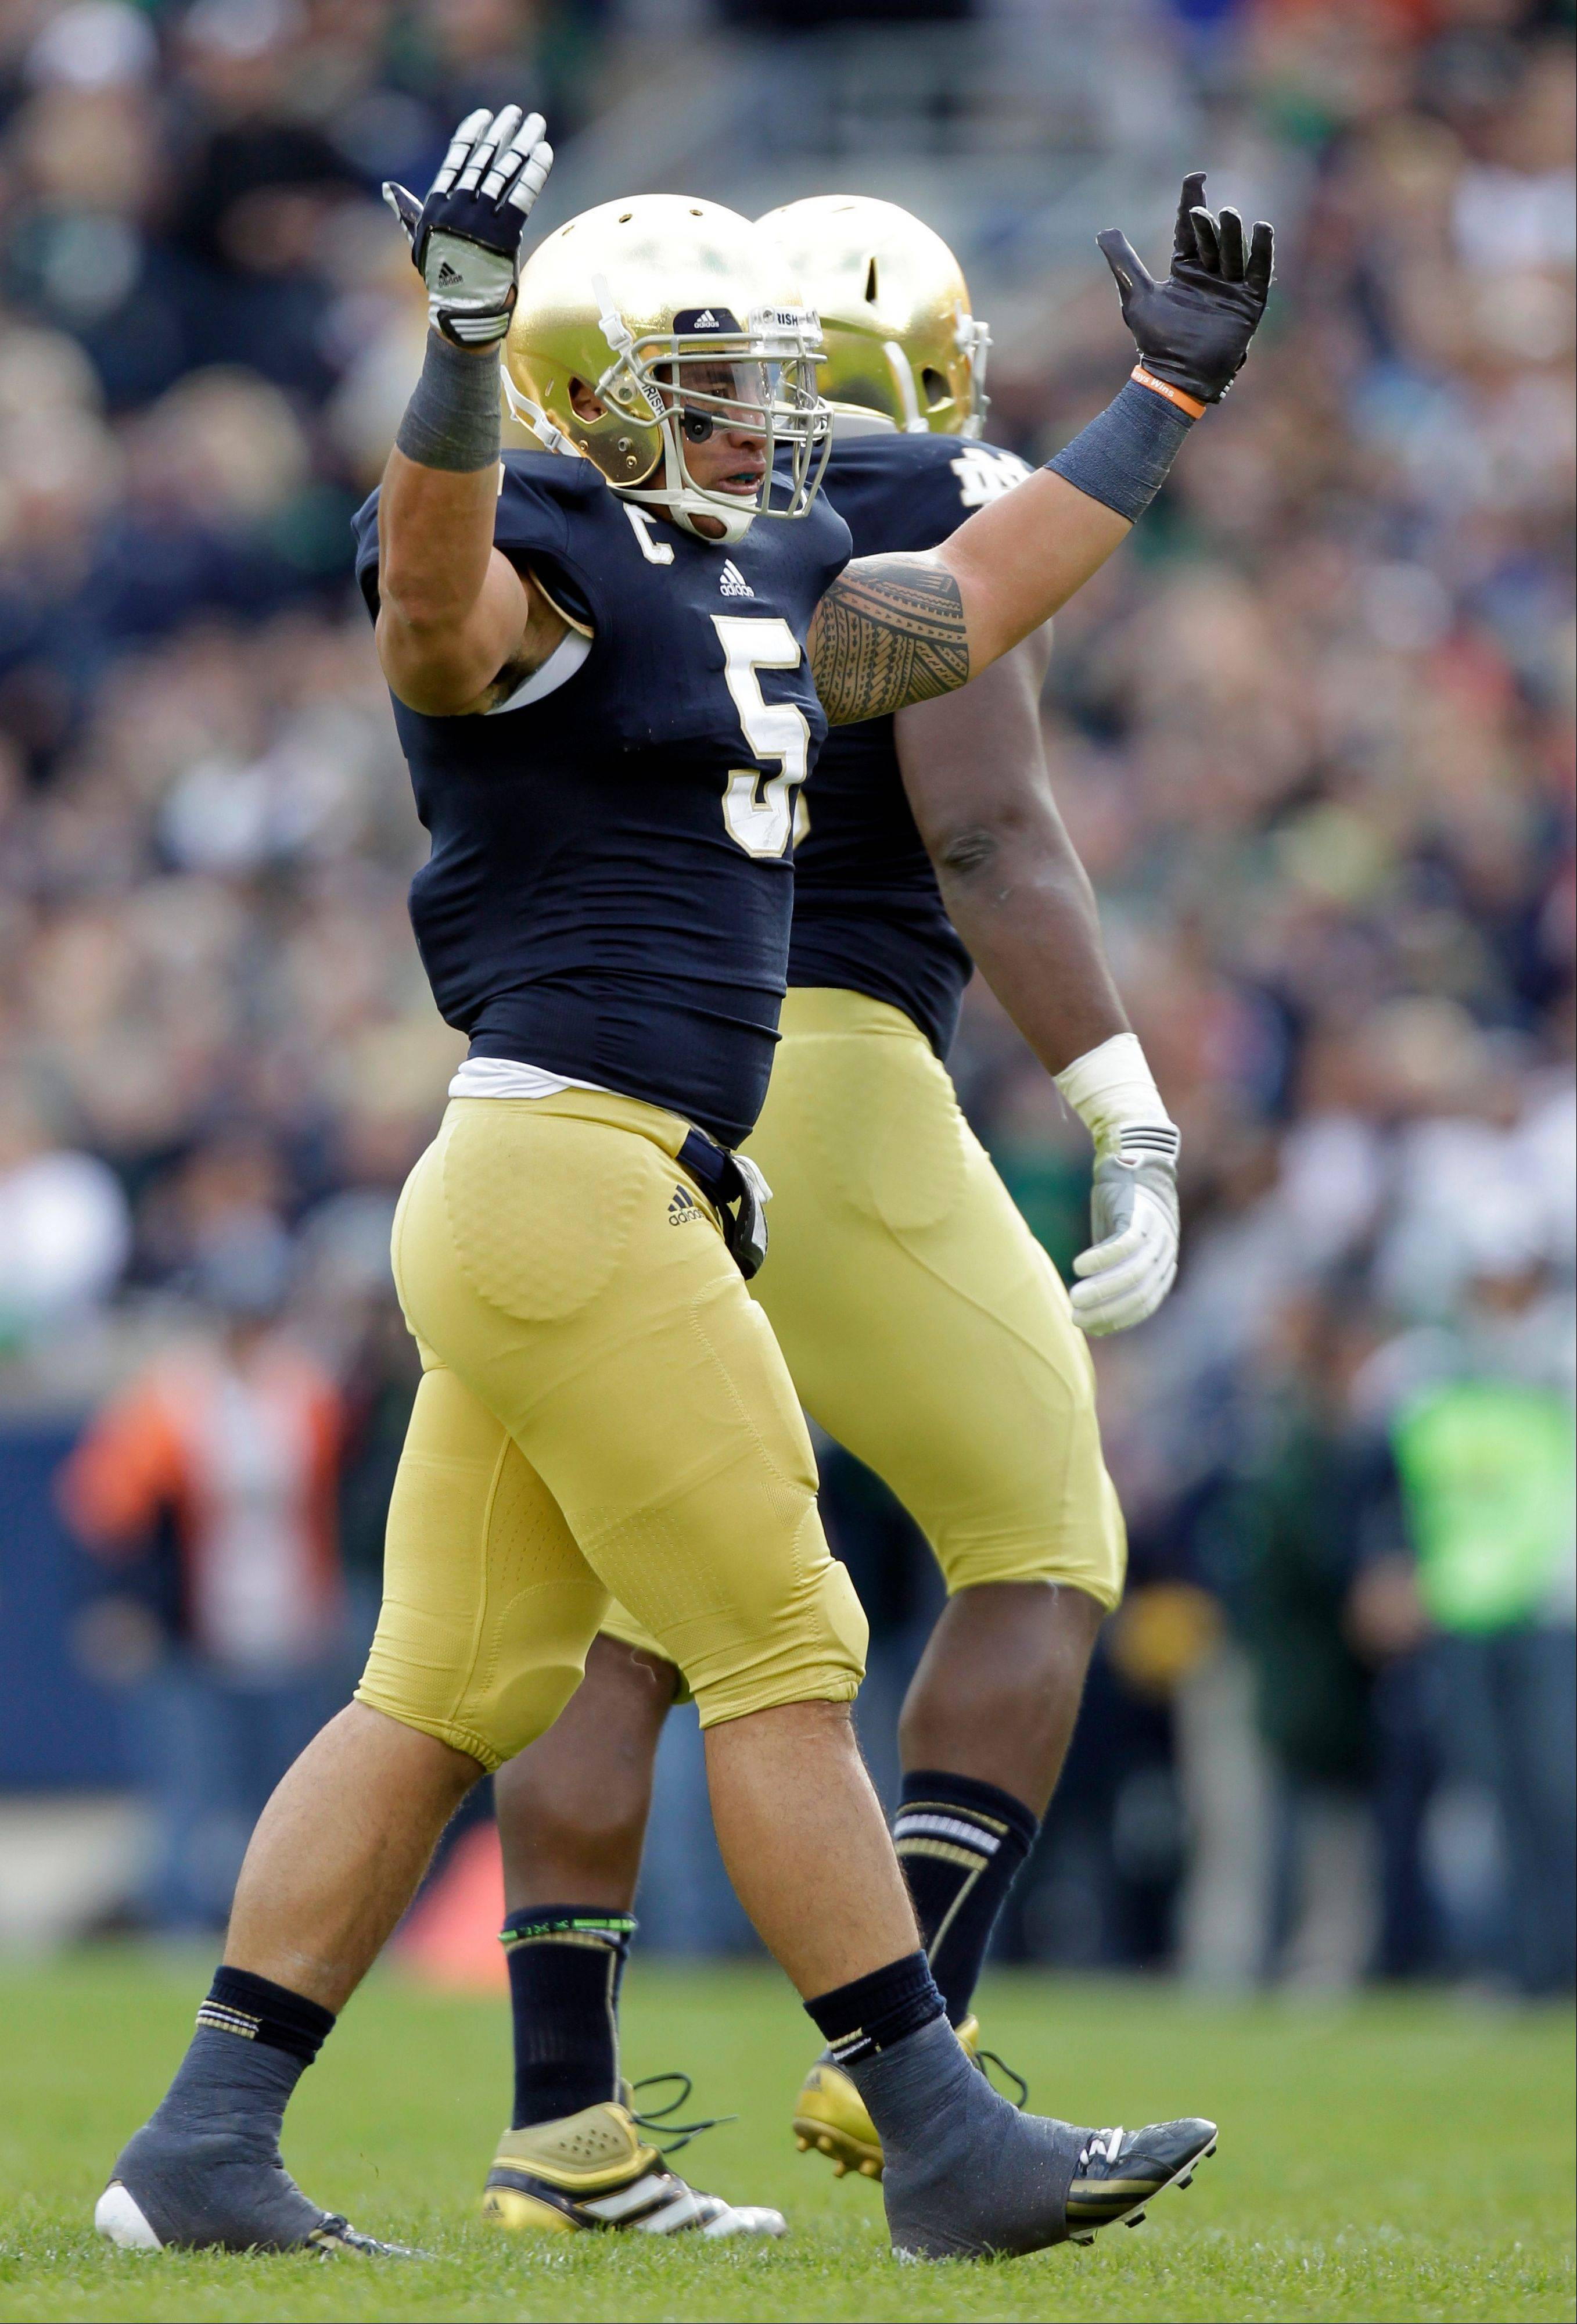 Notre Dame linebacker Manti Te'o celebrates after an interception against BYU last Saturday in South Bend, Ind. Notre Dame has built its undefeated start behind Te'o and the nation's second-stingiest defense.